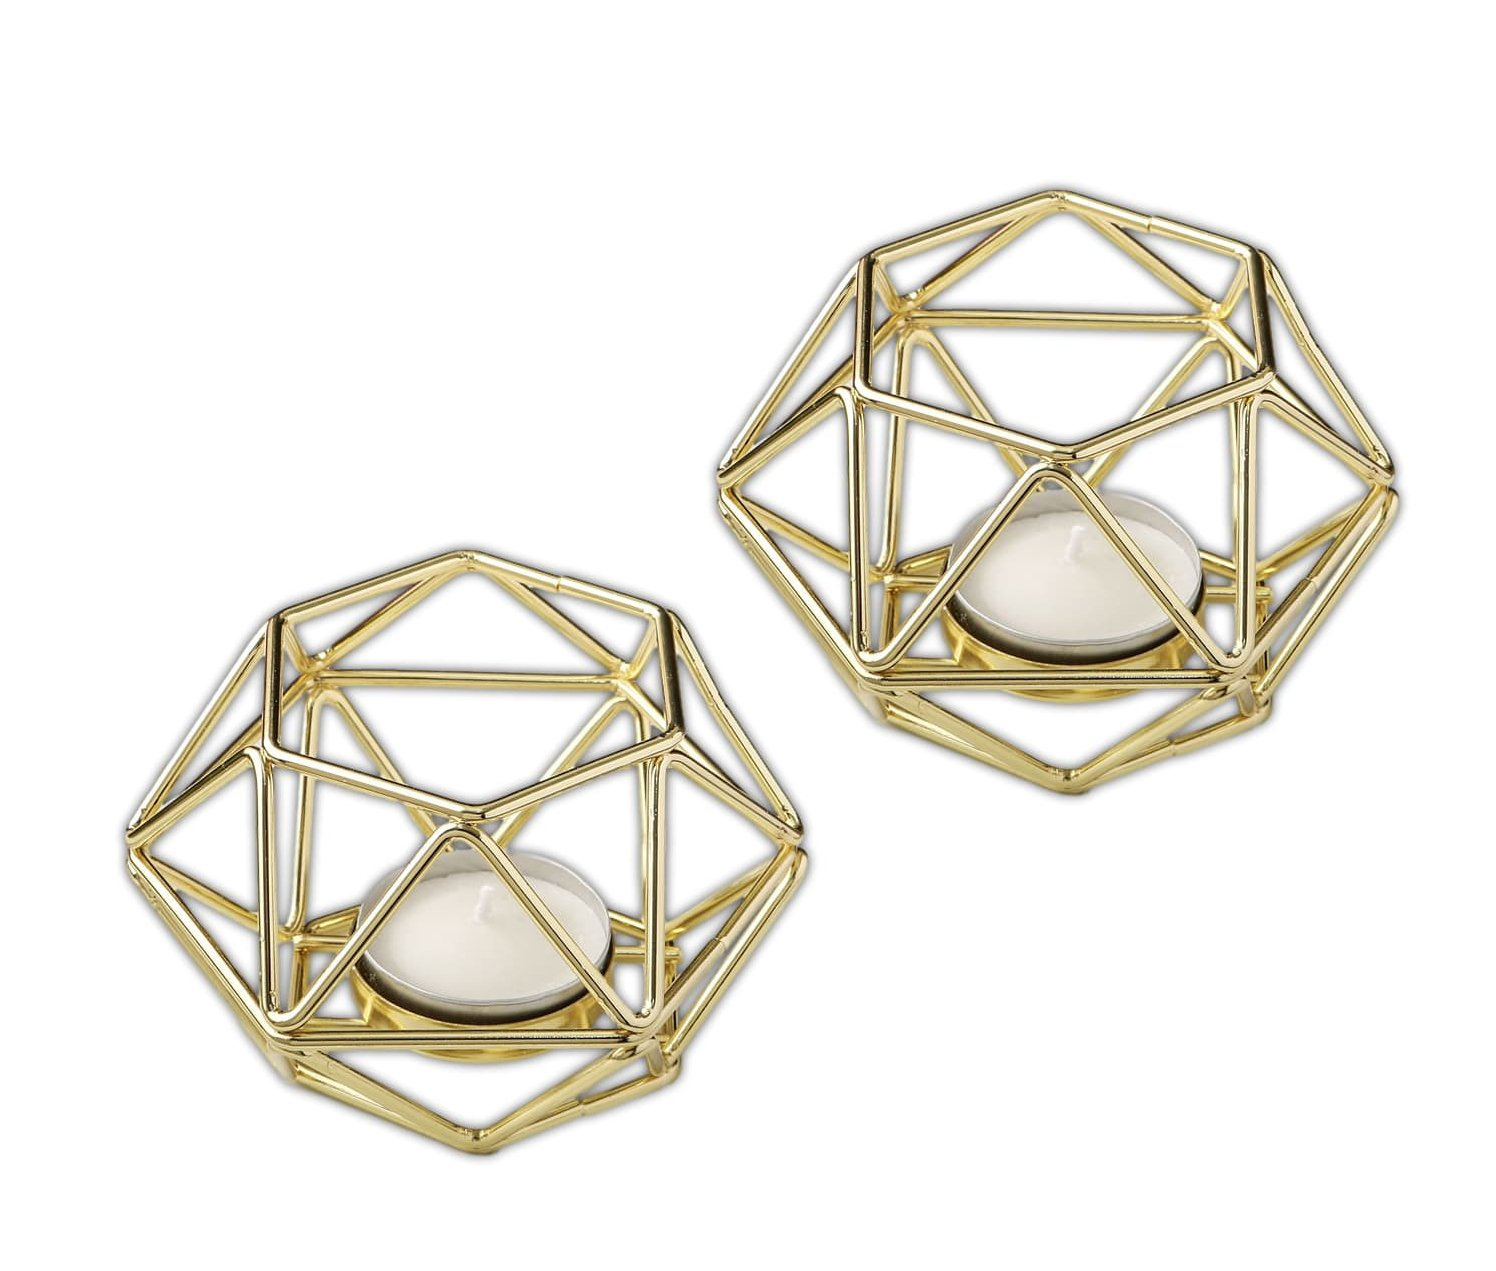 Bundle of 2 Fashioncraft 4'' Gold Geometric Hexagon Tea Light Candle Holders